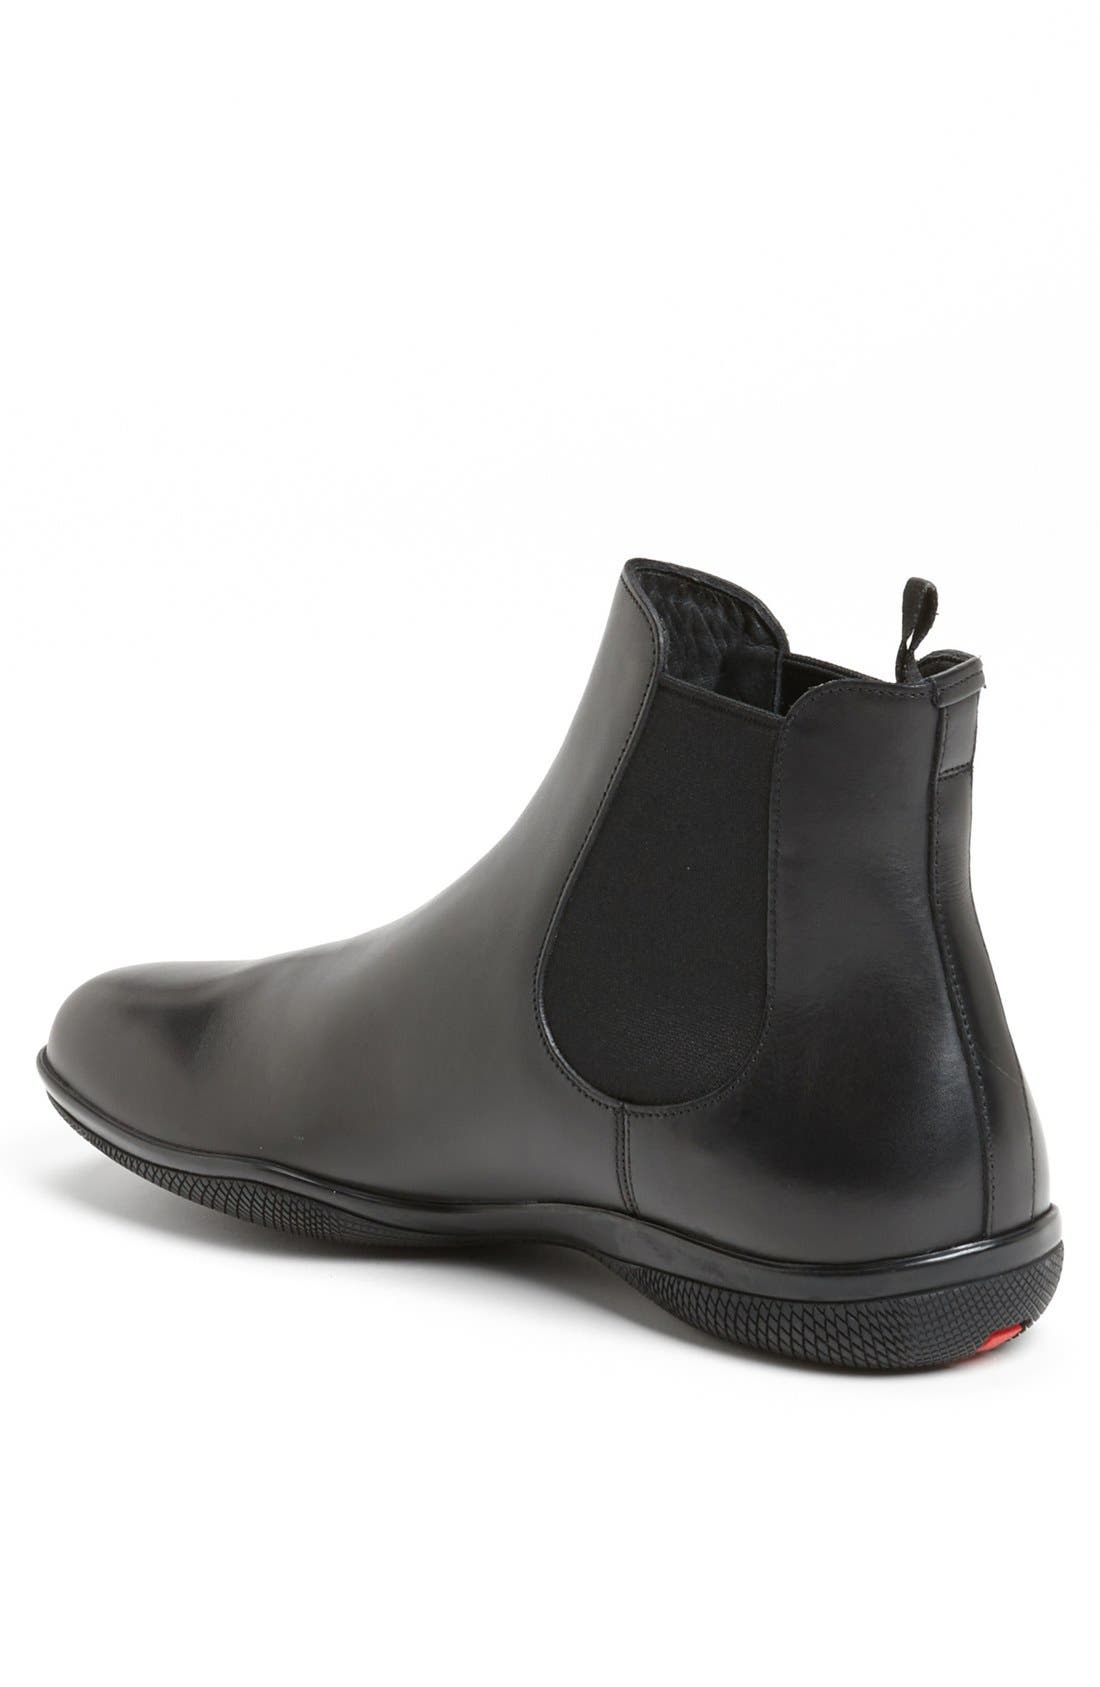 'New Toblak' Chelsea Boot,                             Alternate thumbnail 2, color,                             Black